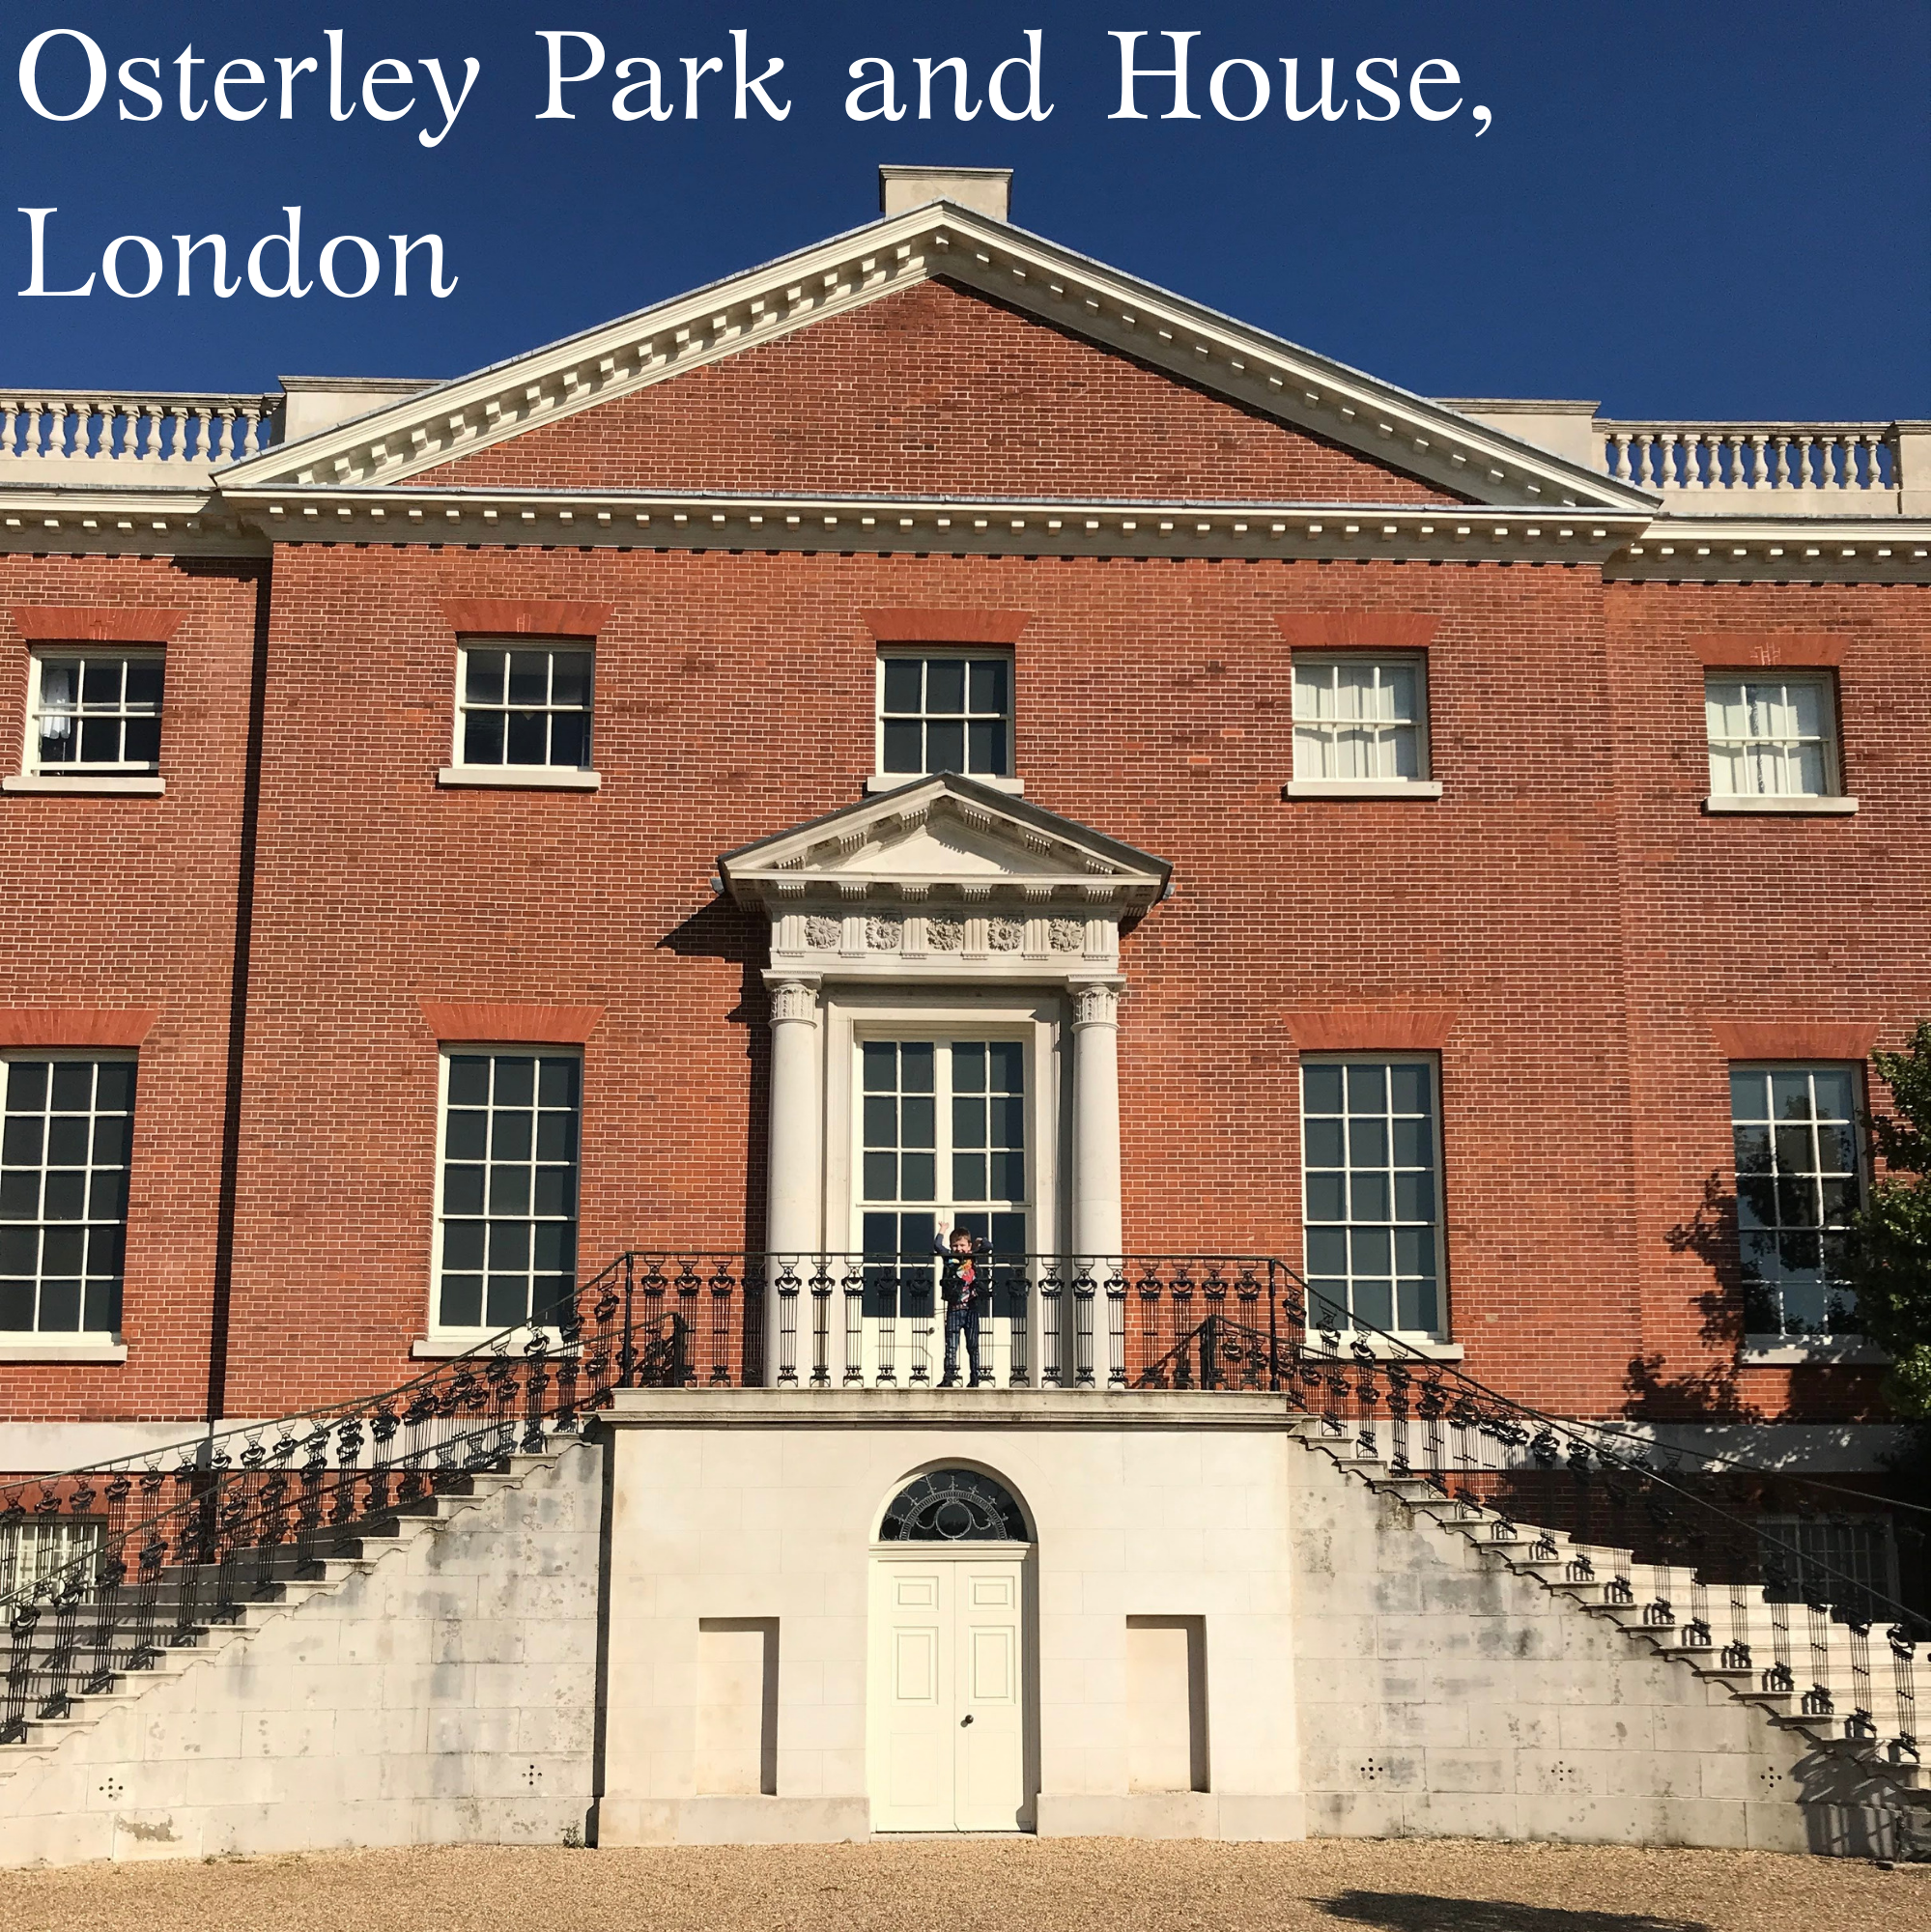 Osterley Park and House, London